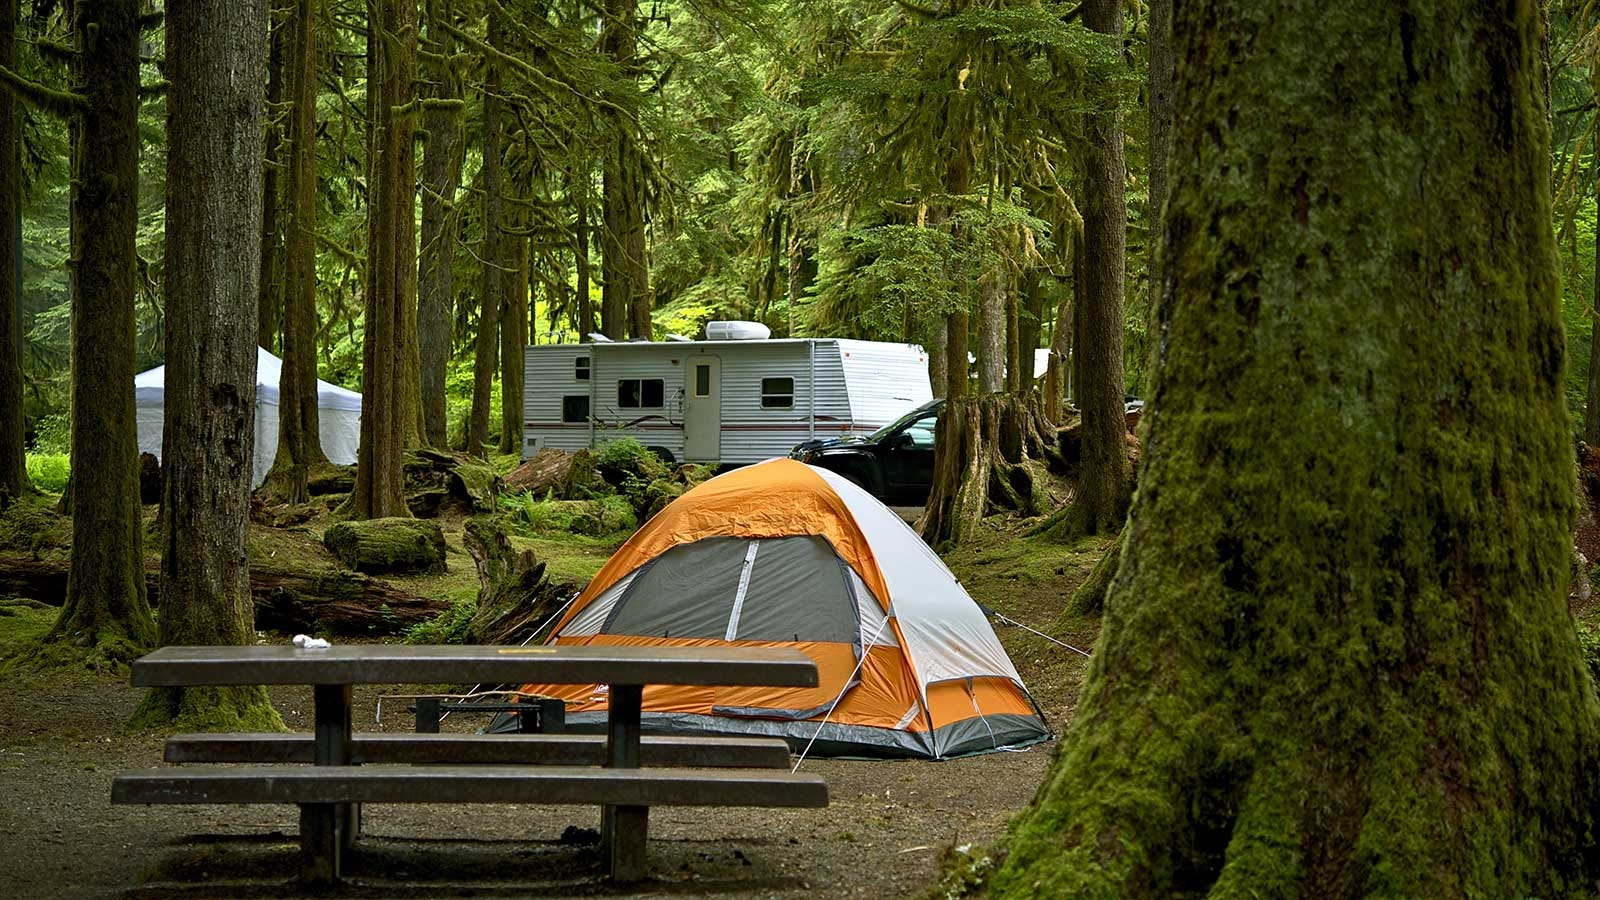 A picnic table, two tents, and a camper in a woodland campground.